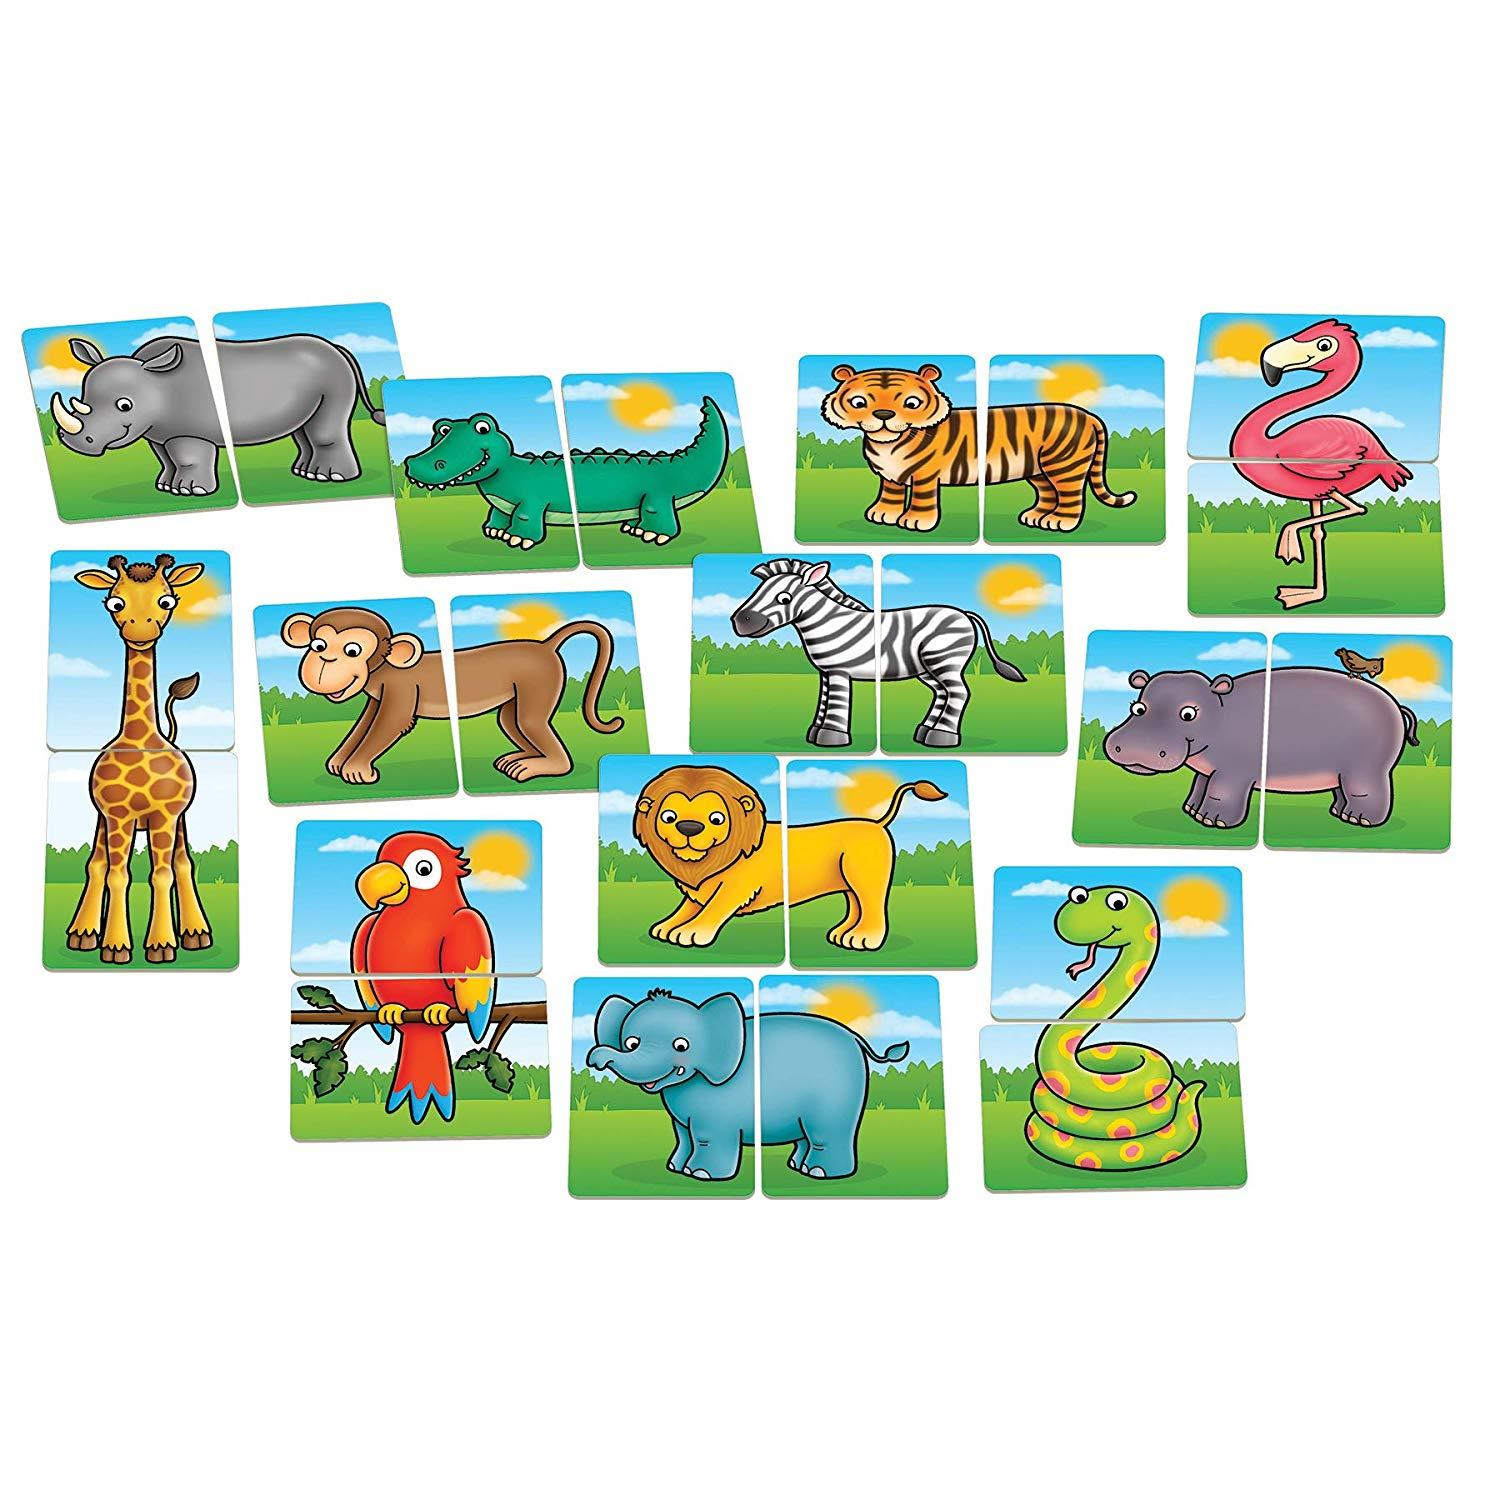 thumbnail 120 - Orchard Toys Educational Games For Kids Choose Game From Drop Down Menu